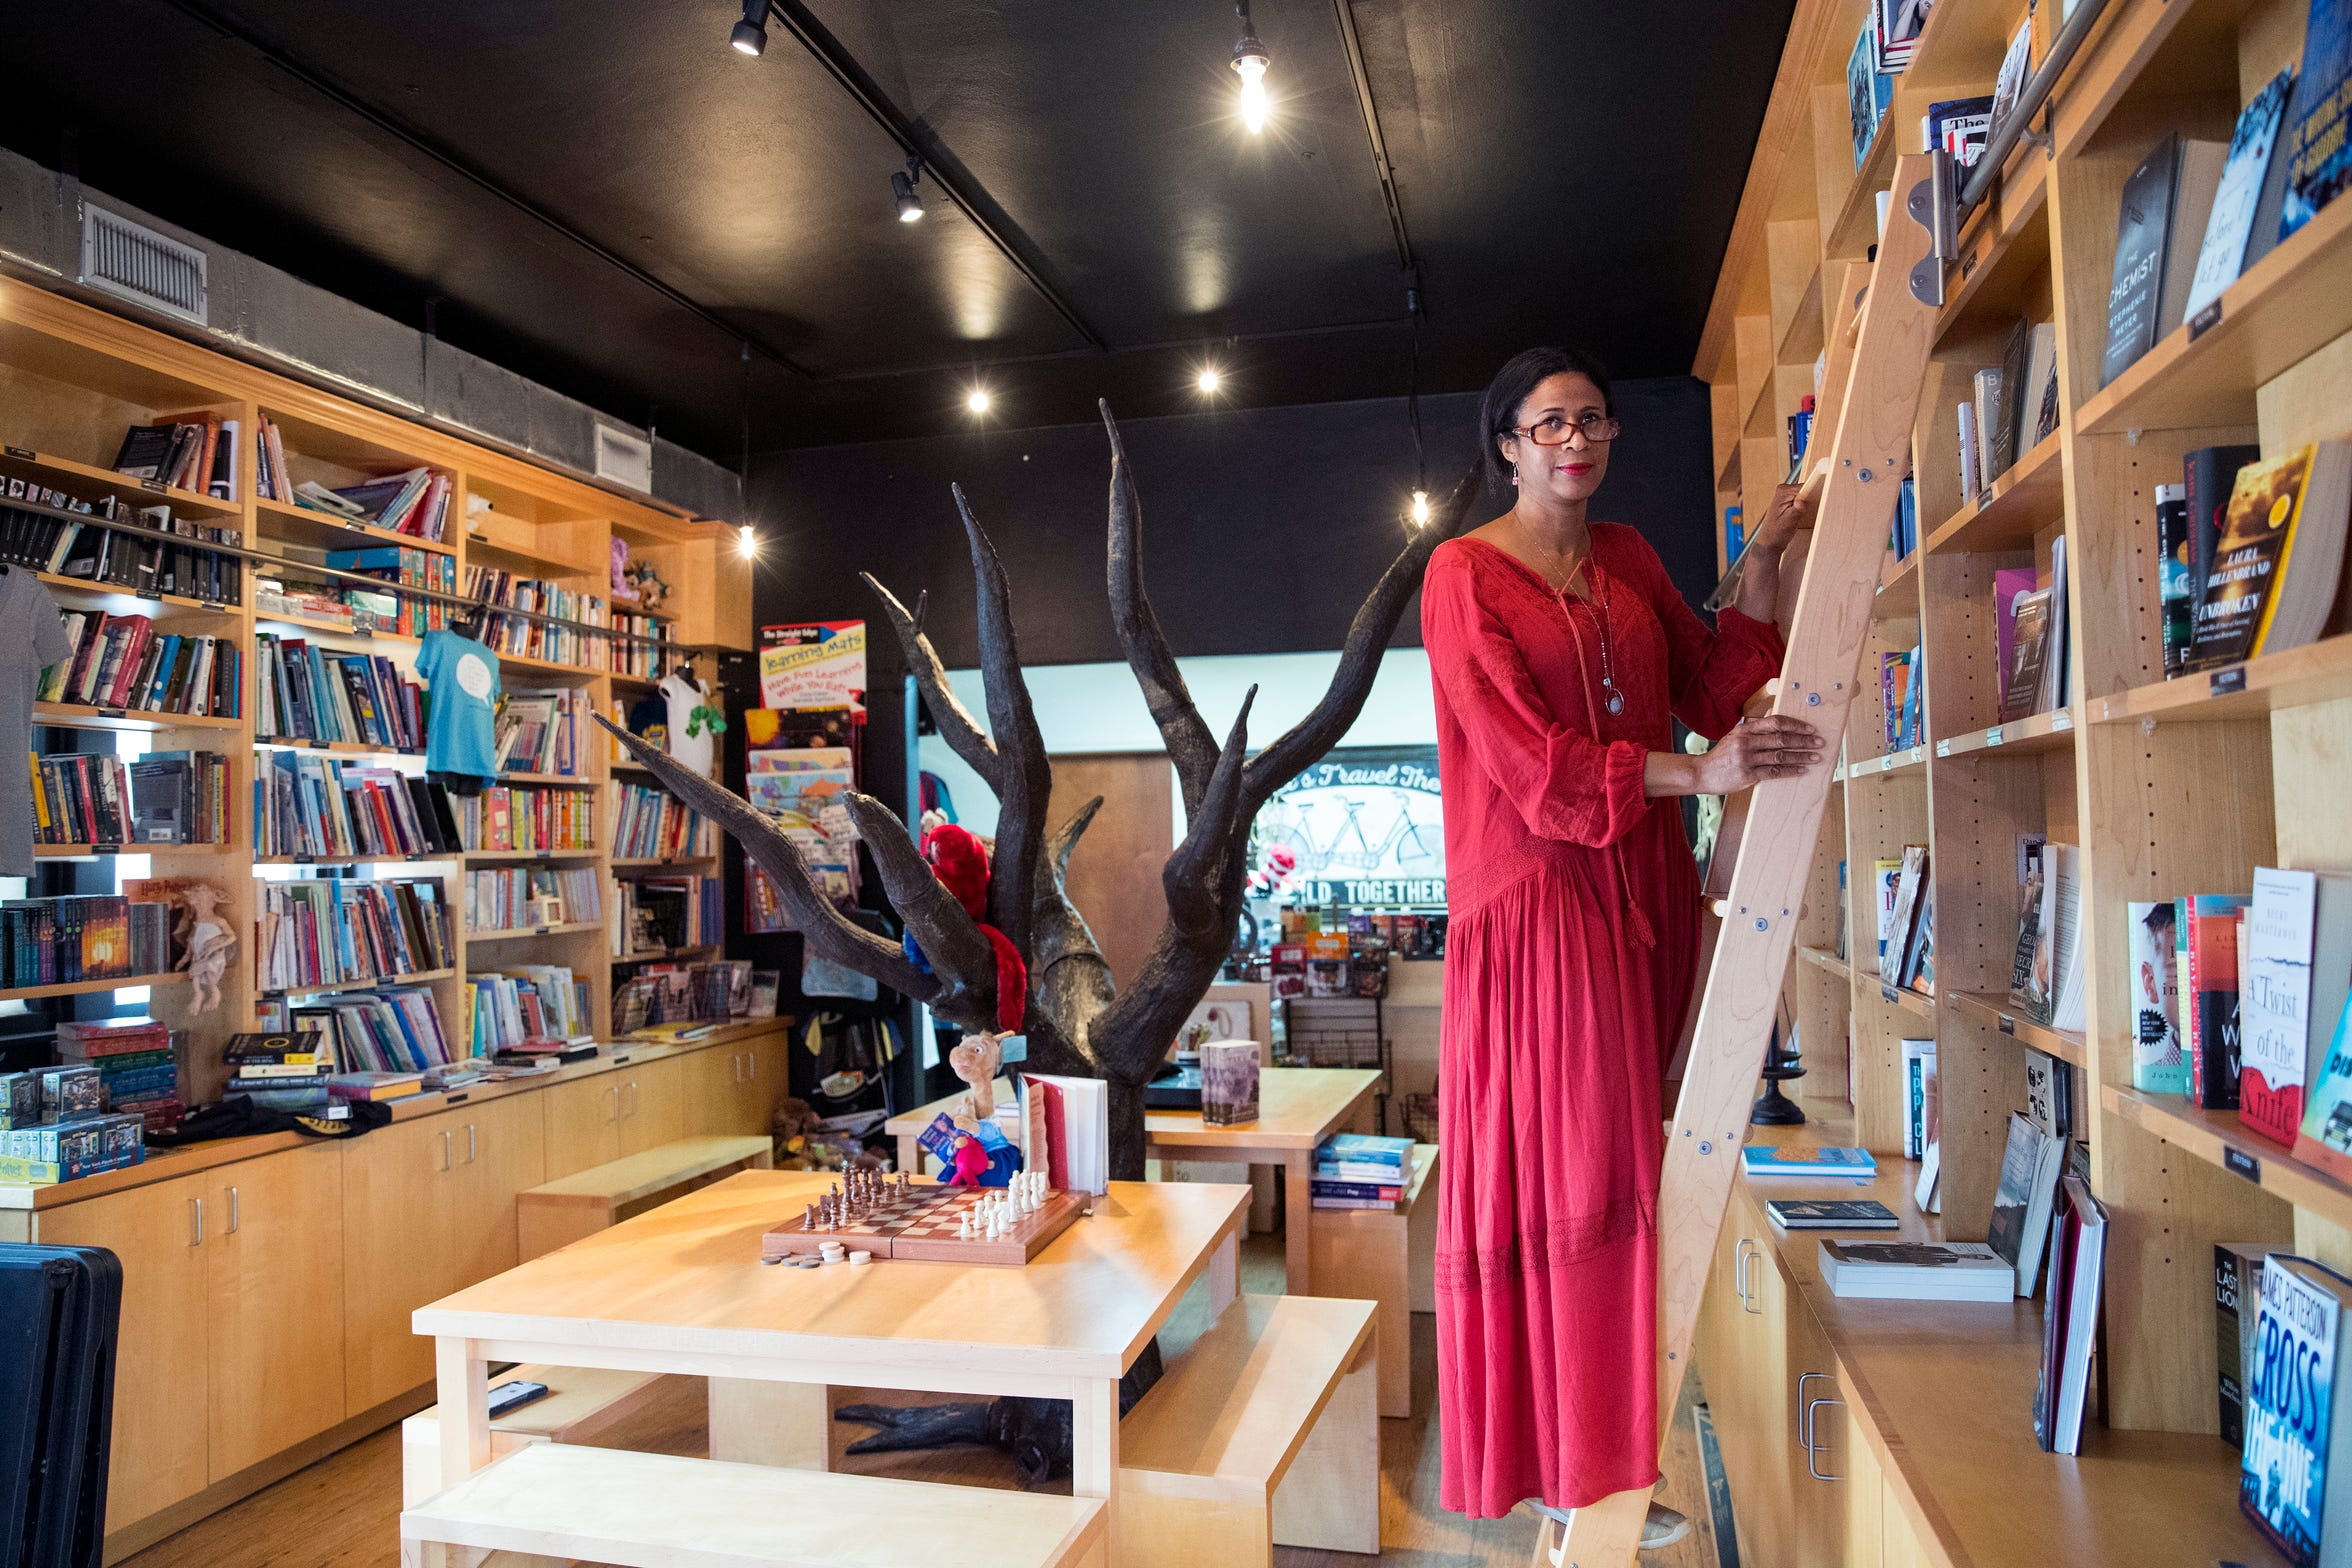 Dr. Jimie Owsley wanted her bookstore to help people be smarter. She gives away a free book every day to help people grow their personal libraries and the books offered in the store are books to help people become smarter. By the Book opened in 2016, but was shuttered as road construction limited accessibility to her business. They have reopened.